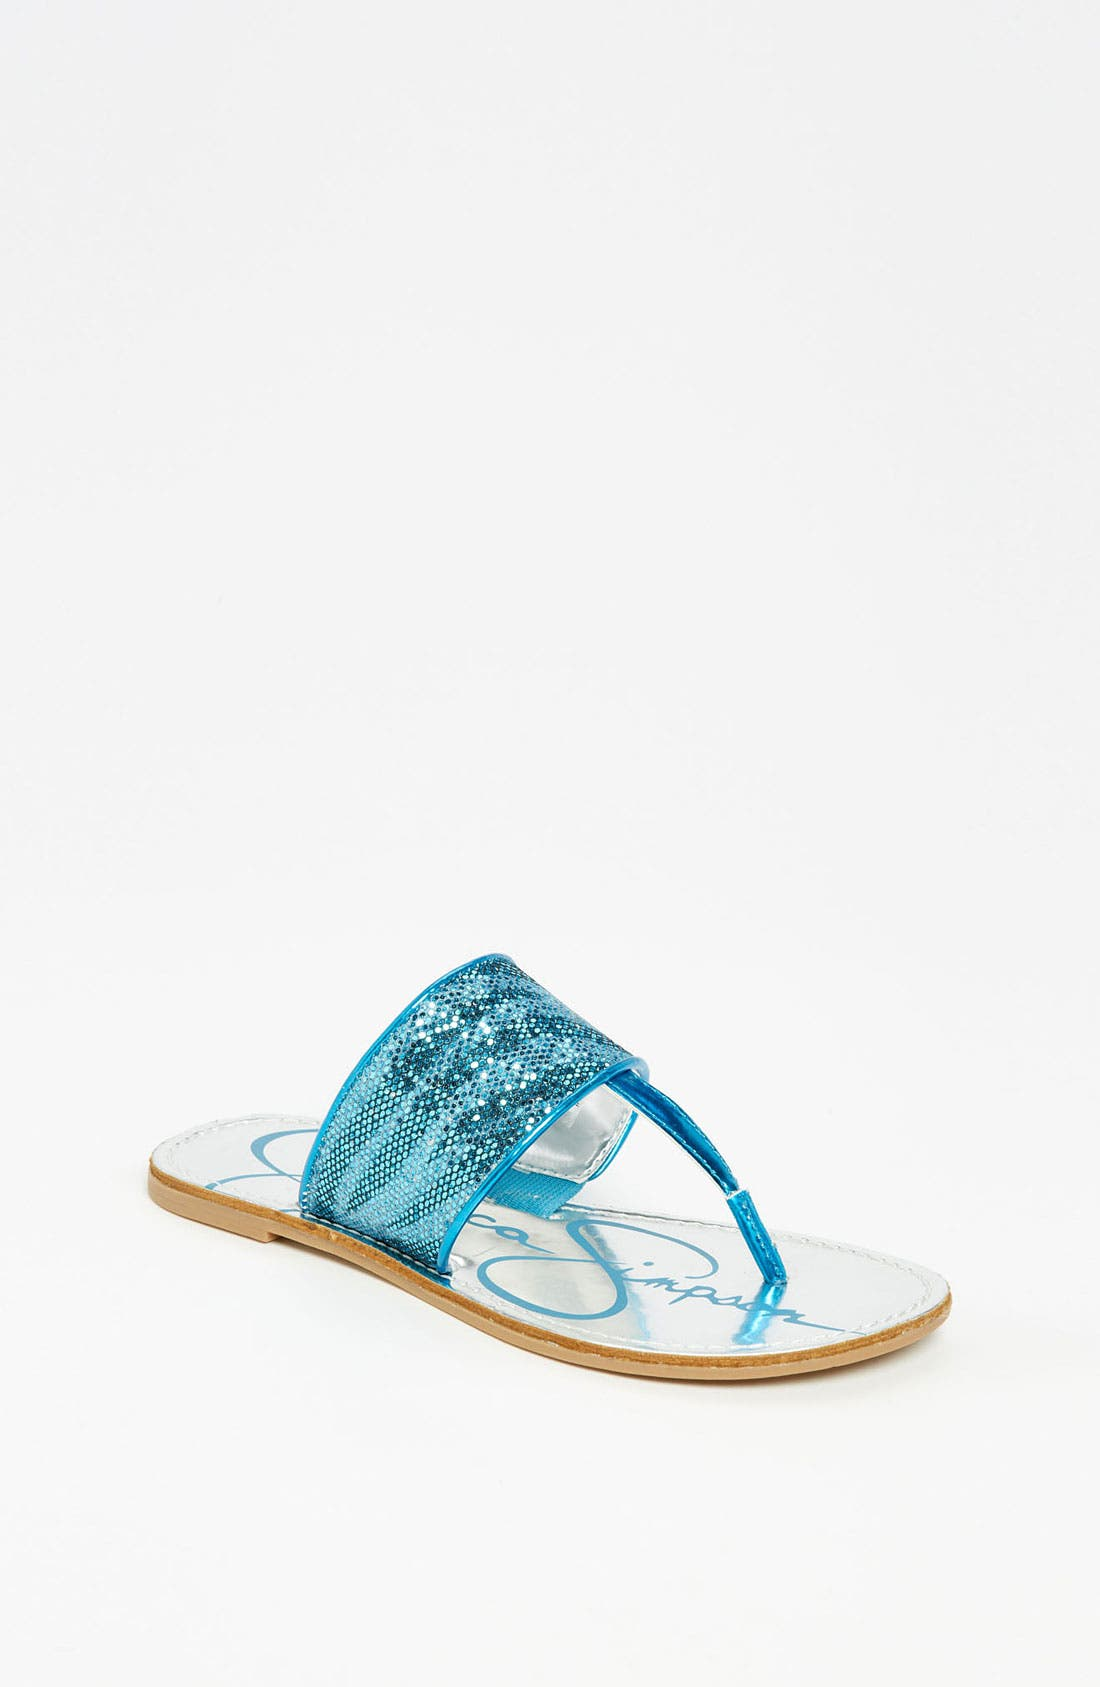 Alternate Image 1 Selected - Jessica Simpson 'Millie' Sandal (Toddler, Little Kid & Big Kid)